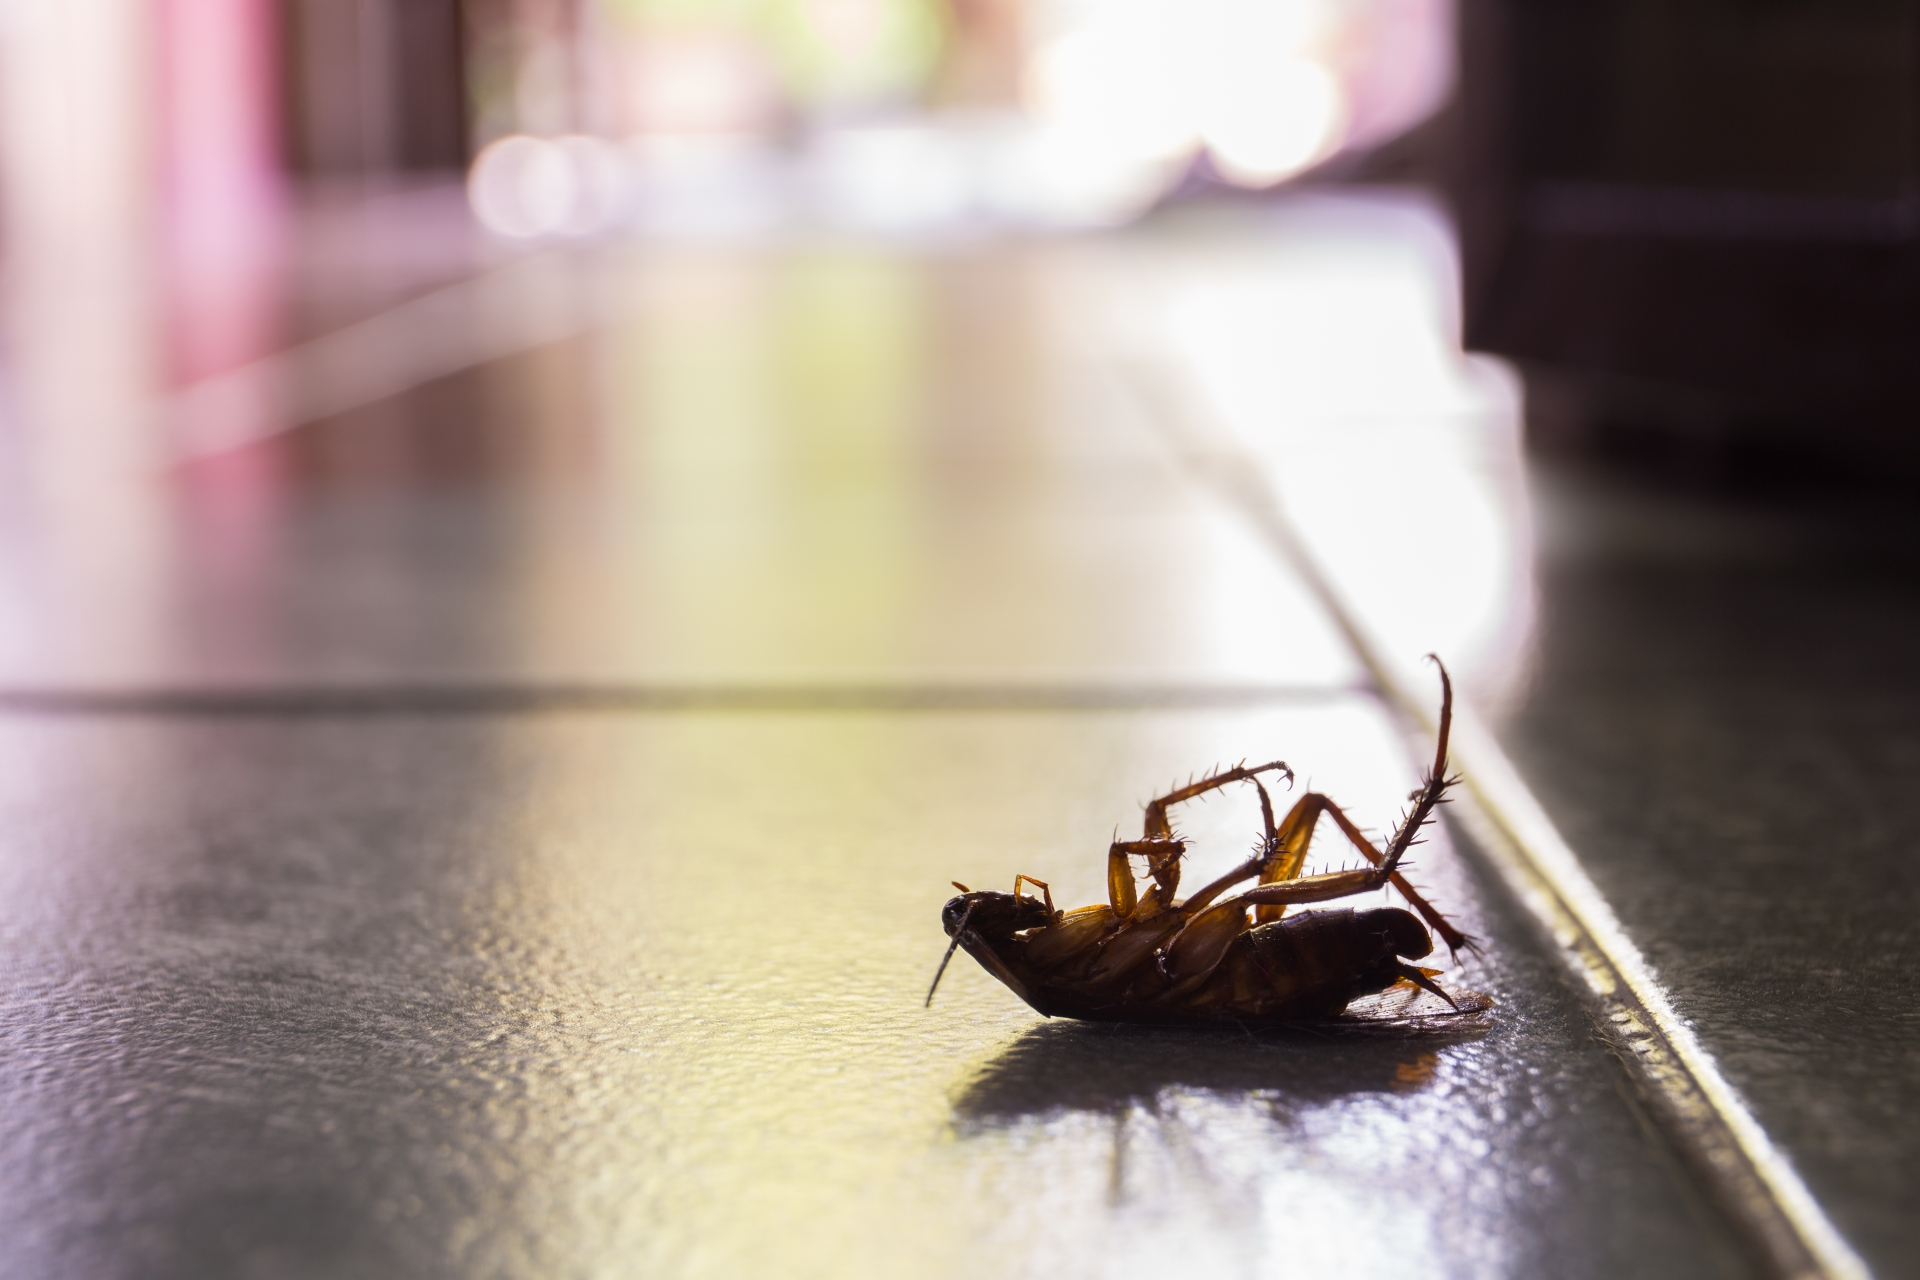 Cockroach Control, Pest Control in Forest Gate, Upton Park, E7. Call Now 020 8166 9746